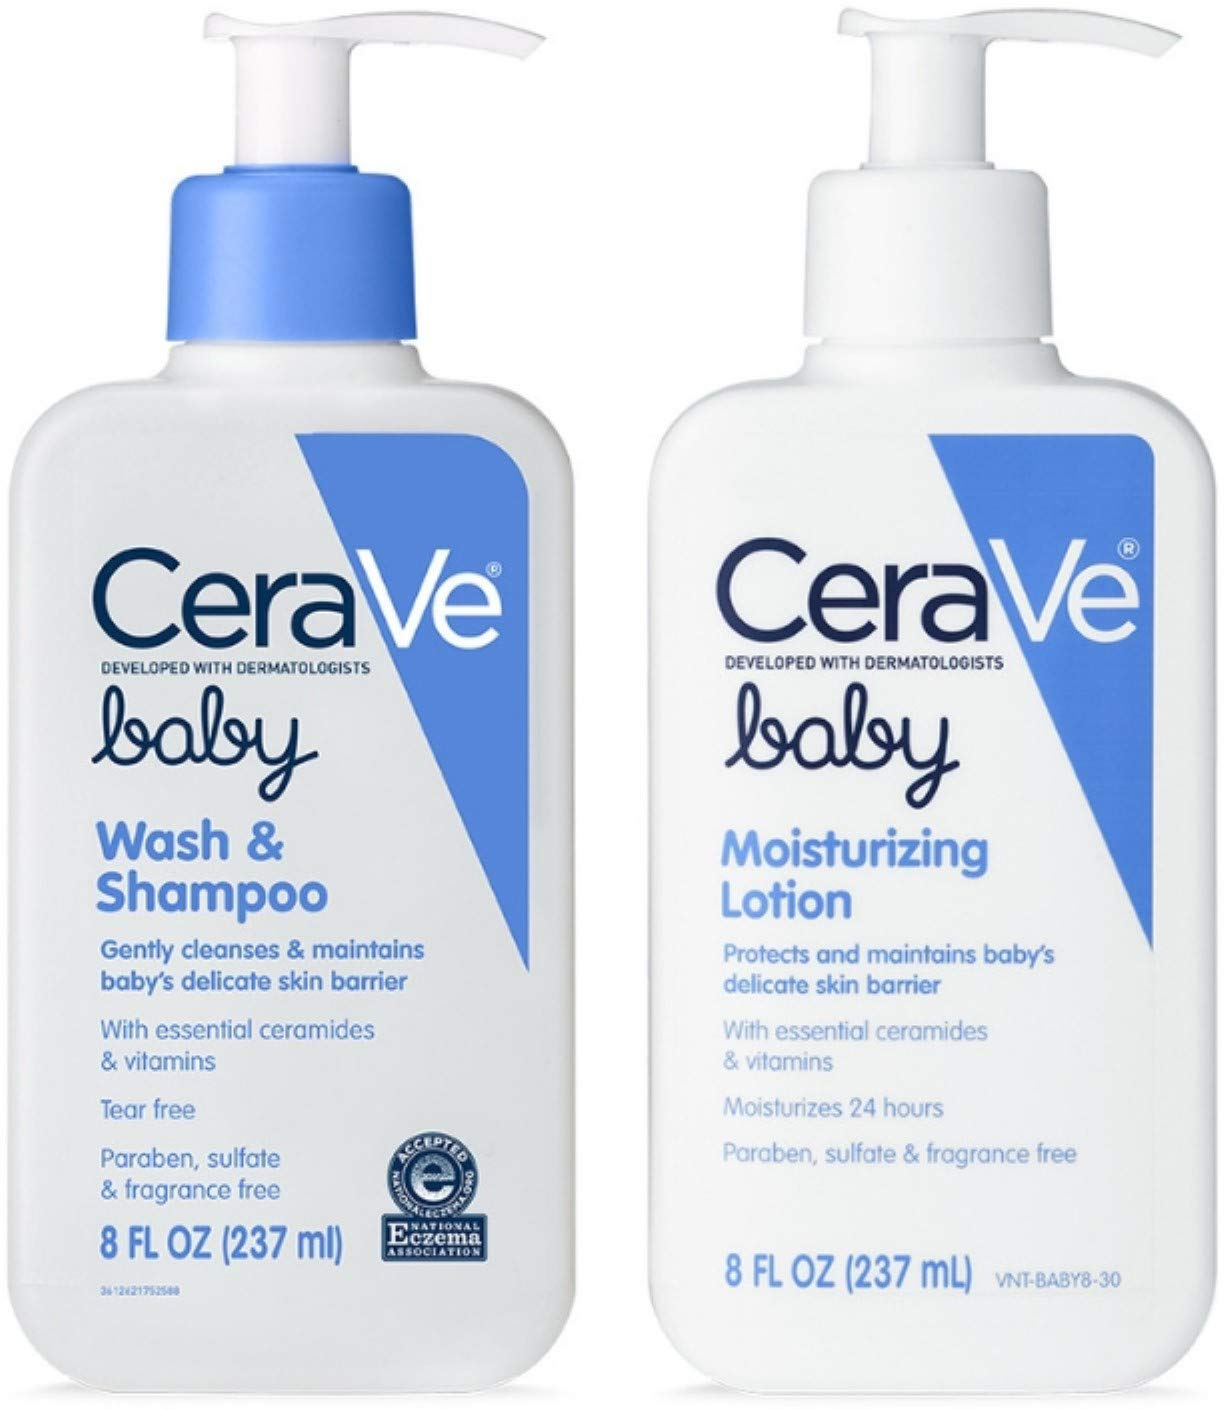 CeraVe Baby Skincare Bundle | Contains CeraVe Baby Wash & Shampoo and CeraVe Baby Lotion 1 ea by CeraVe